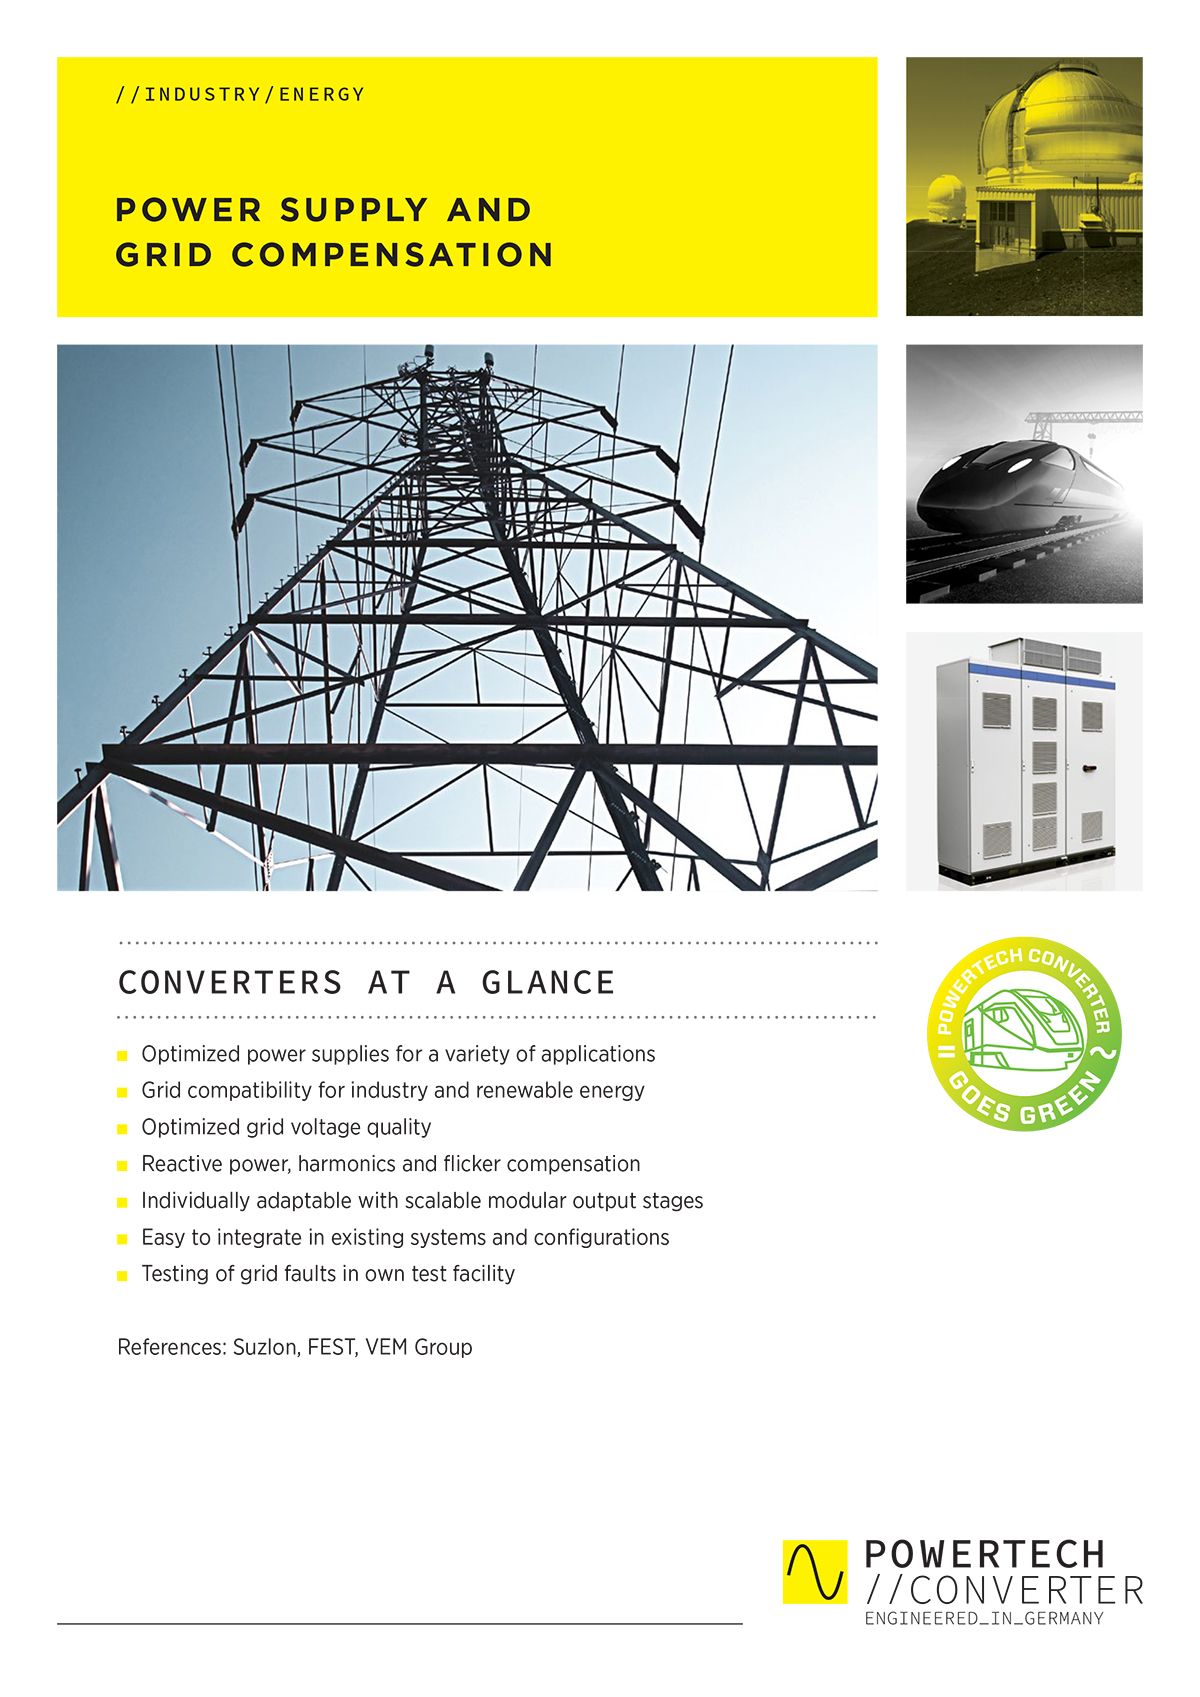 POWER SUPPLY AND GRID COMPENSATION